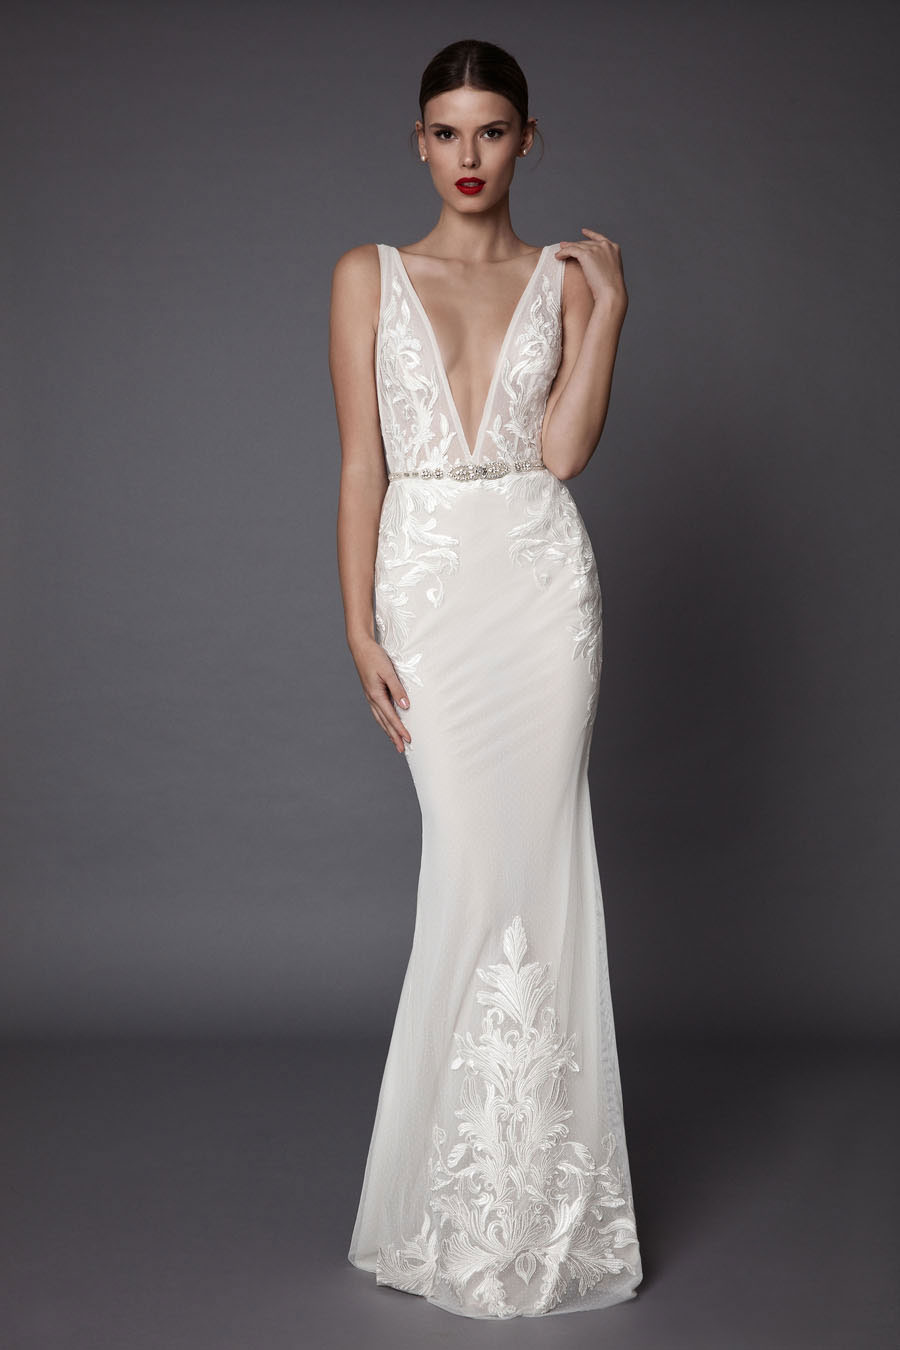 MUSE! A Fashion-Forward Bridal Line By BERTA